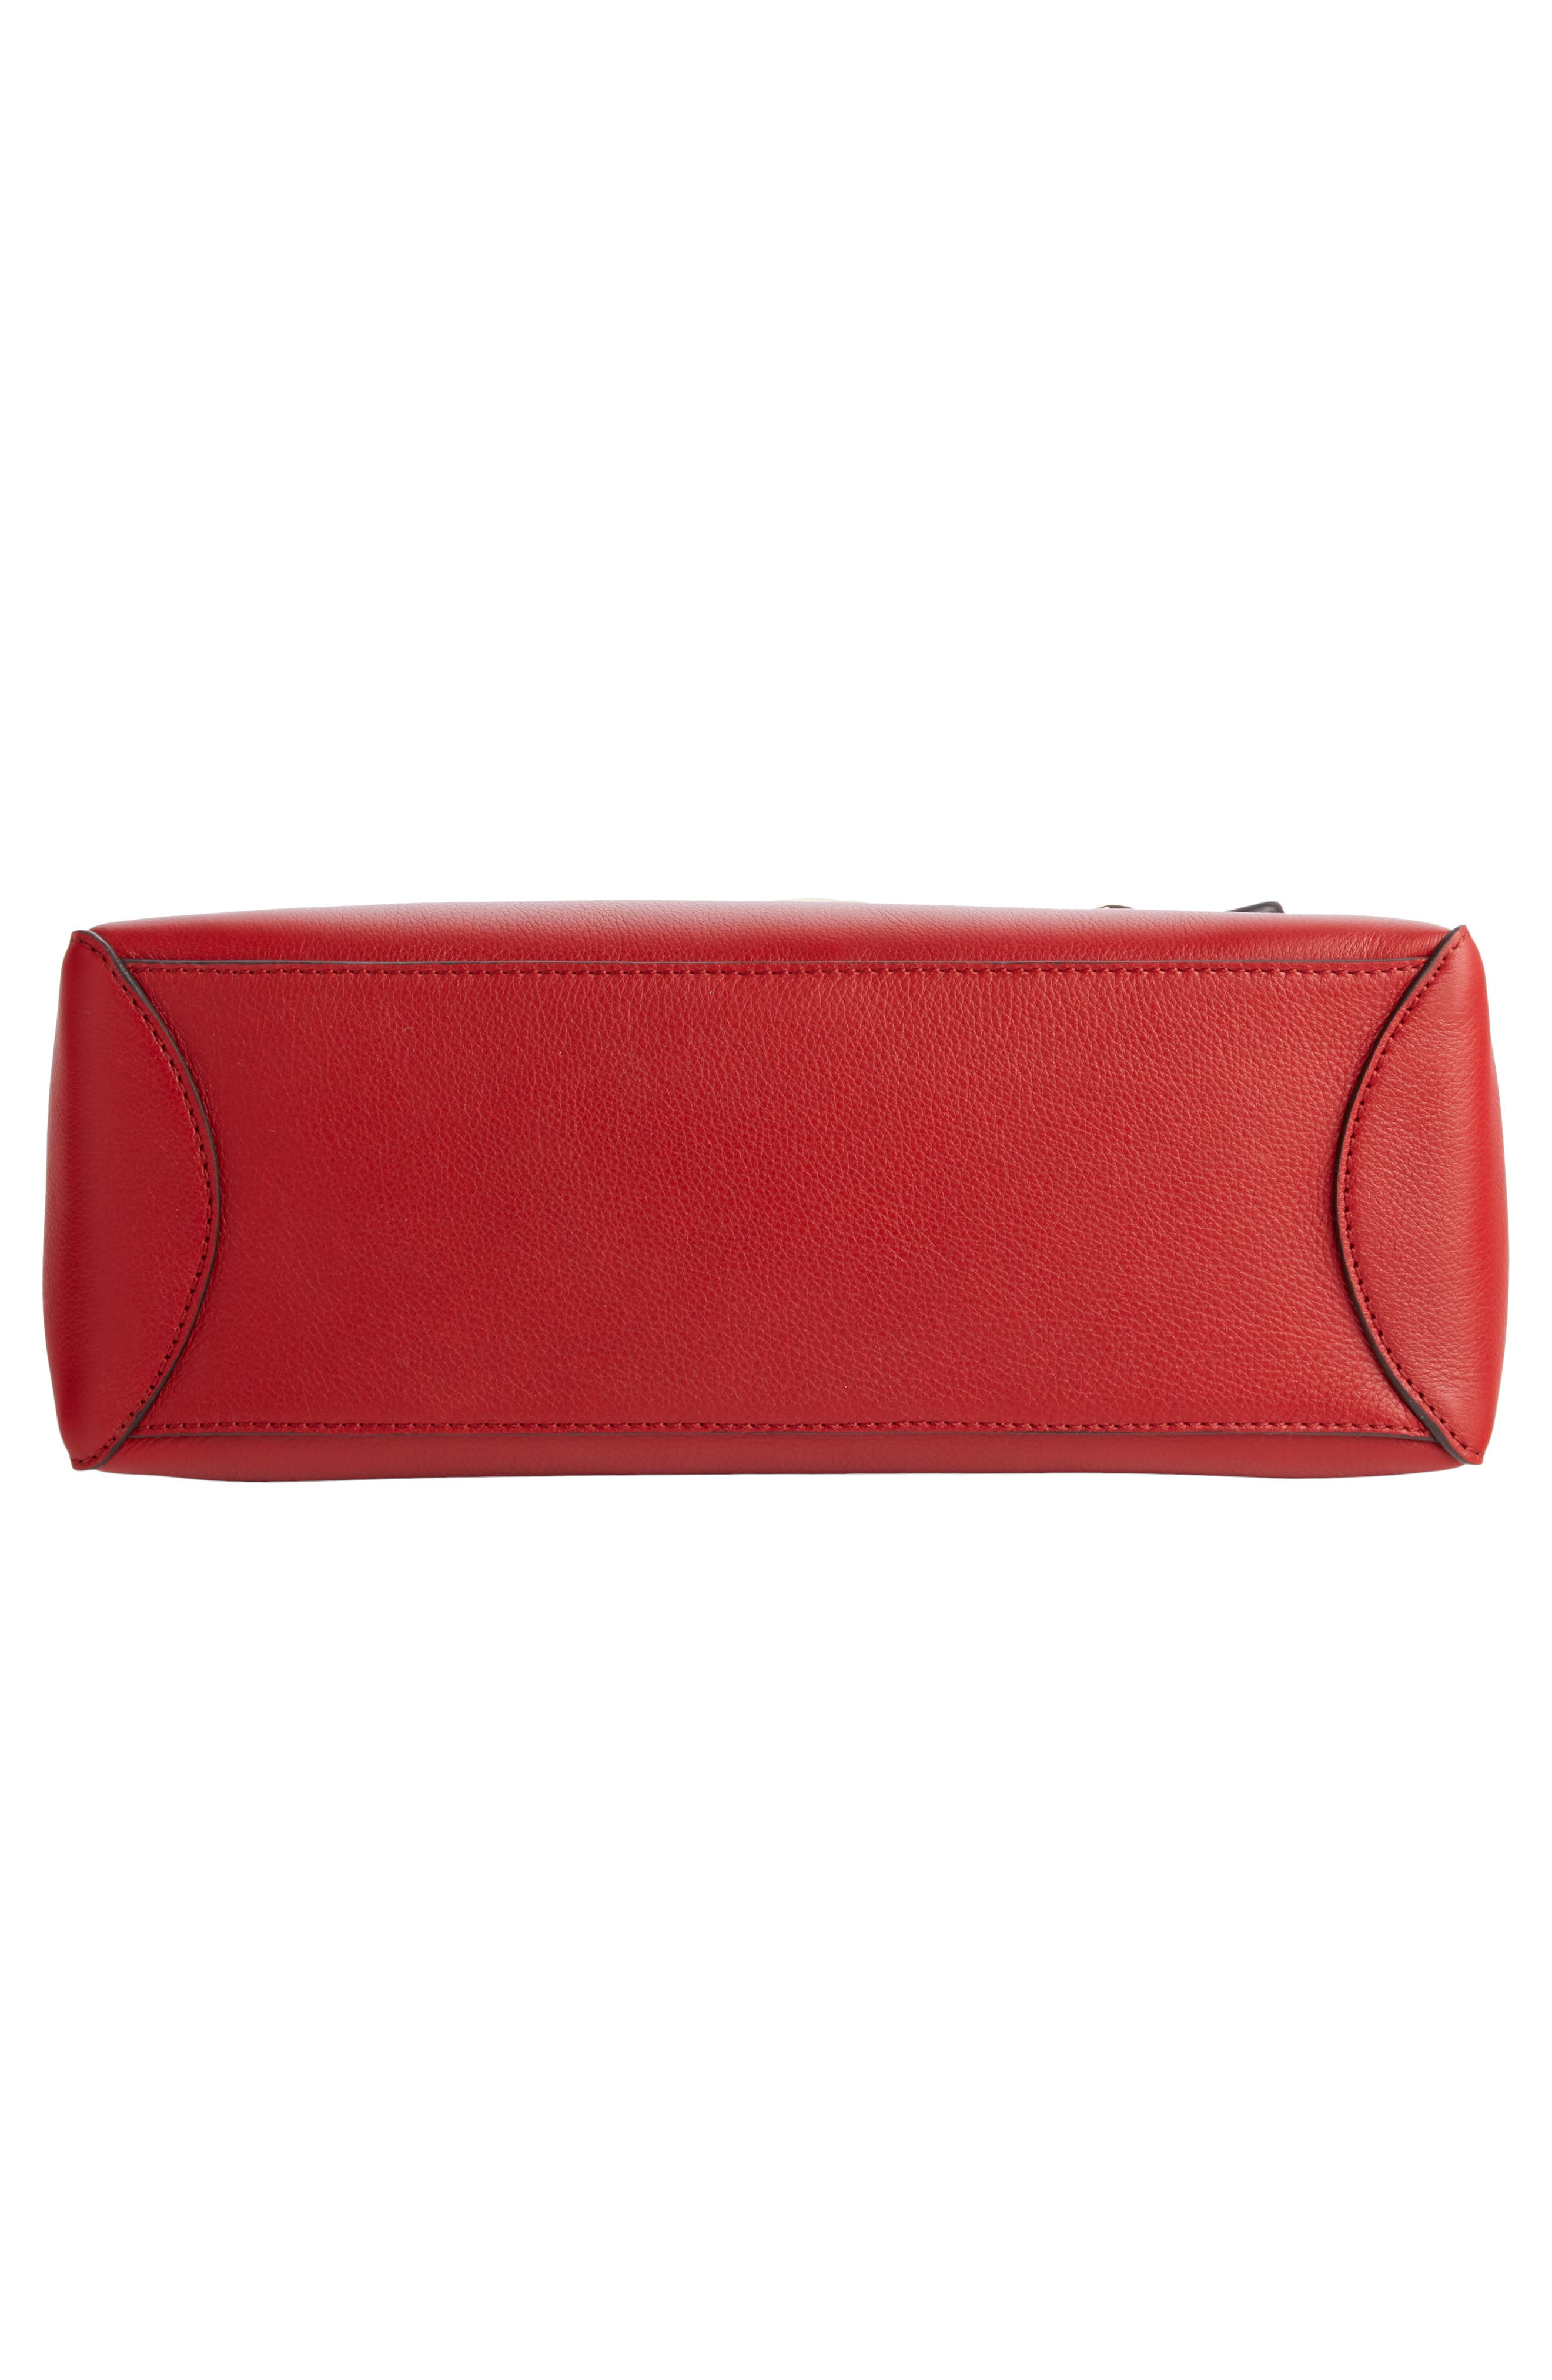 Small Faye Day Leather Shoulder Bag,                             Alternate thumbnail 5, color,                             Dahlia Red